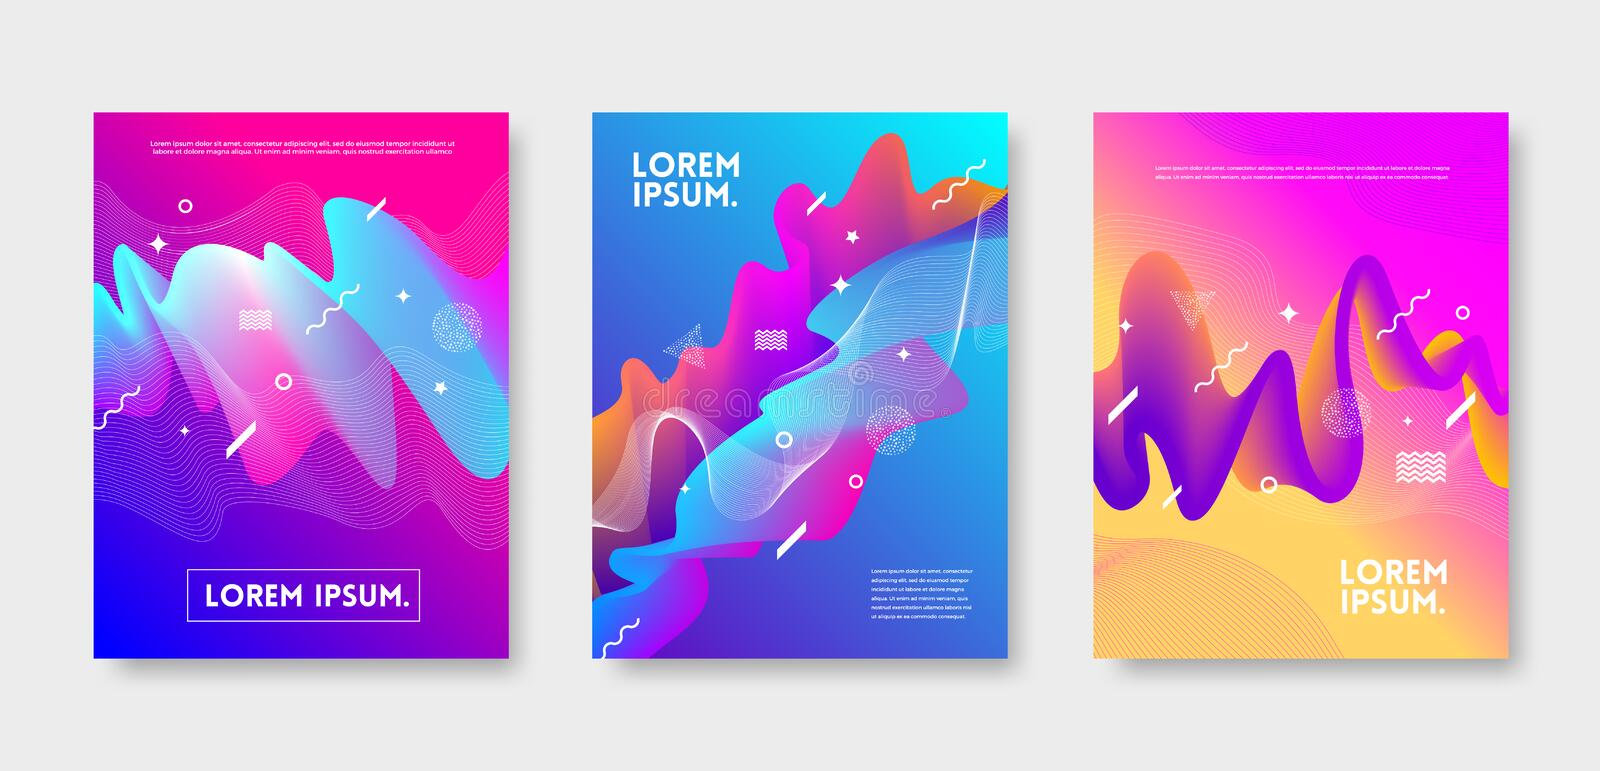 Set of cover design with abstract multicolored flow shapes. Vector illustration template. Universal abstract design for covers. Flyers, banners, greeting card stock illustration